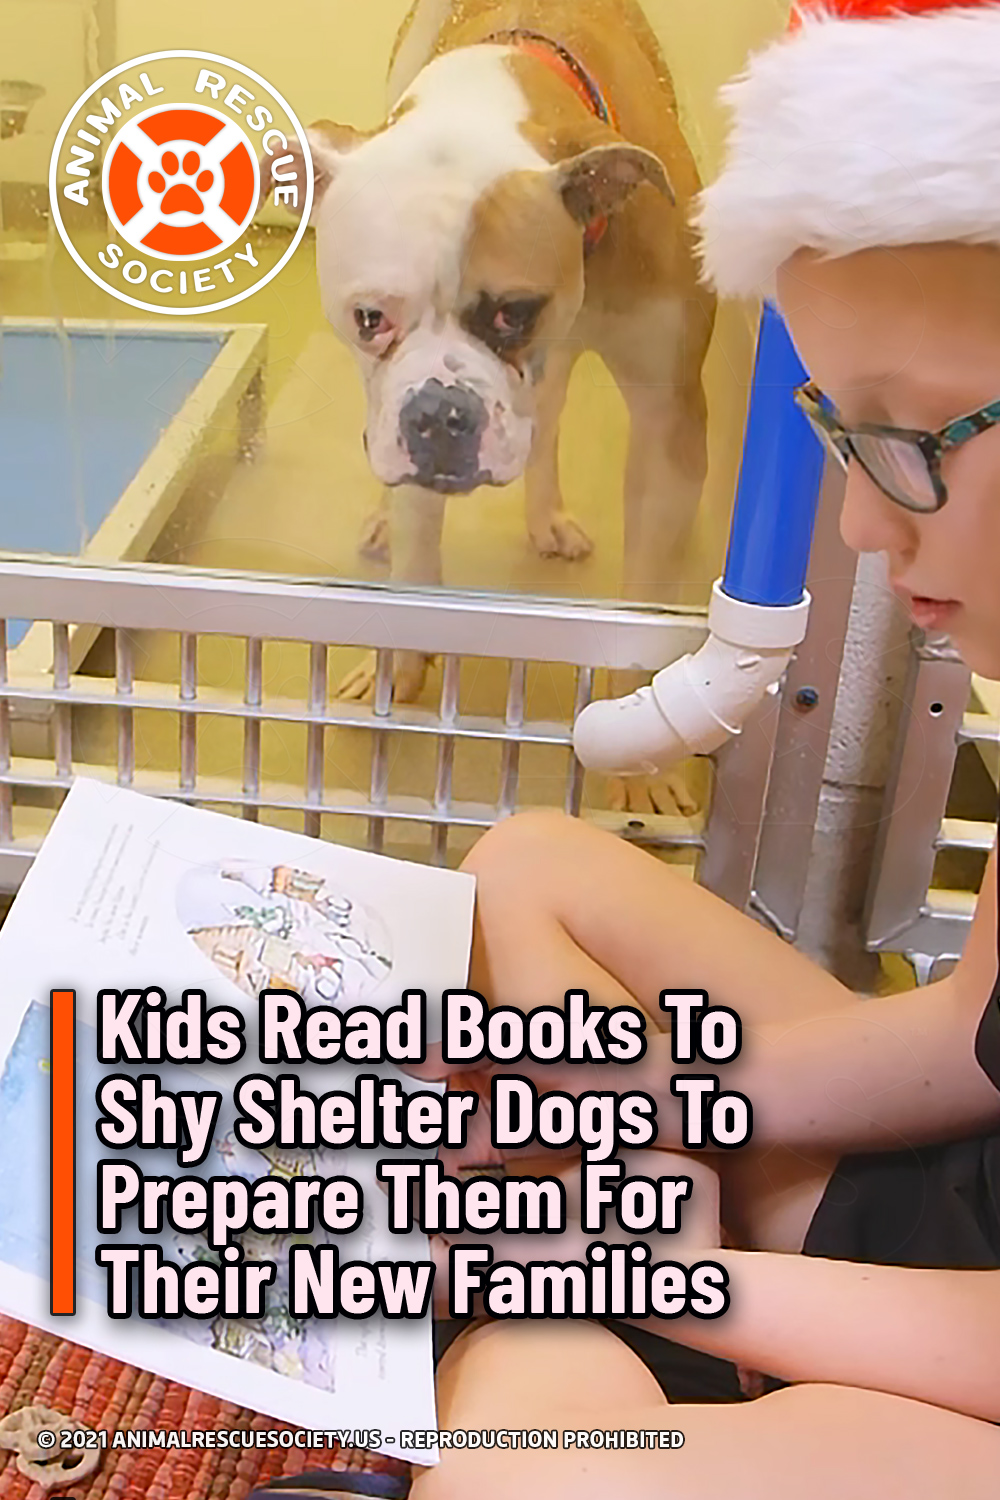 Kids Read Books To Shy Shelter Dogs To Prepare Them For Their New Families